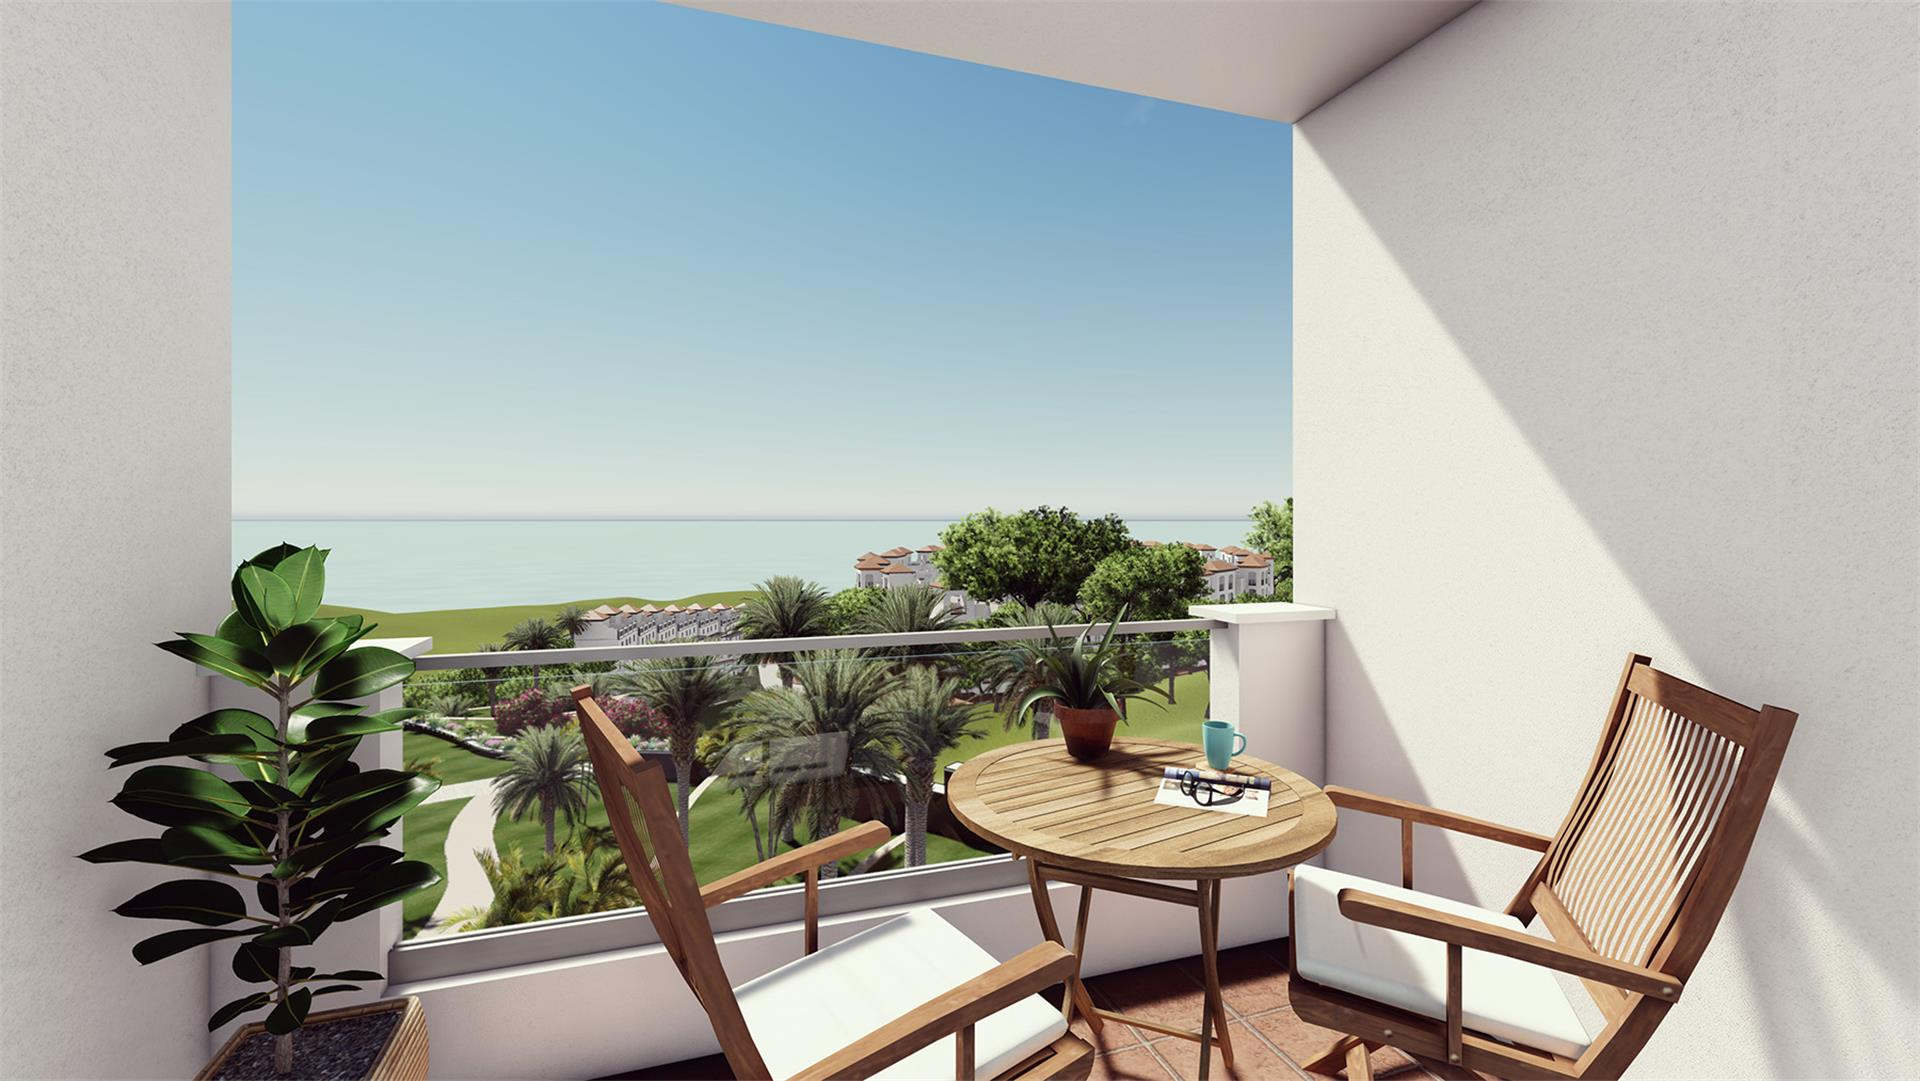 New 2 bedroom apartment in Costa del Sol at the incredible price - mibgroup.es